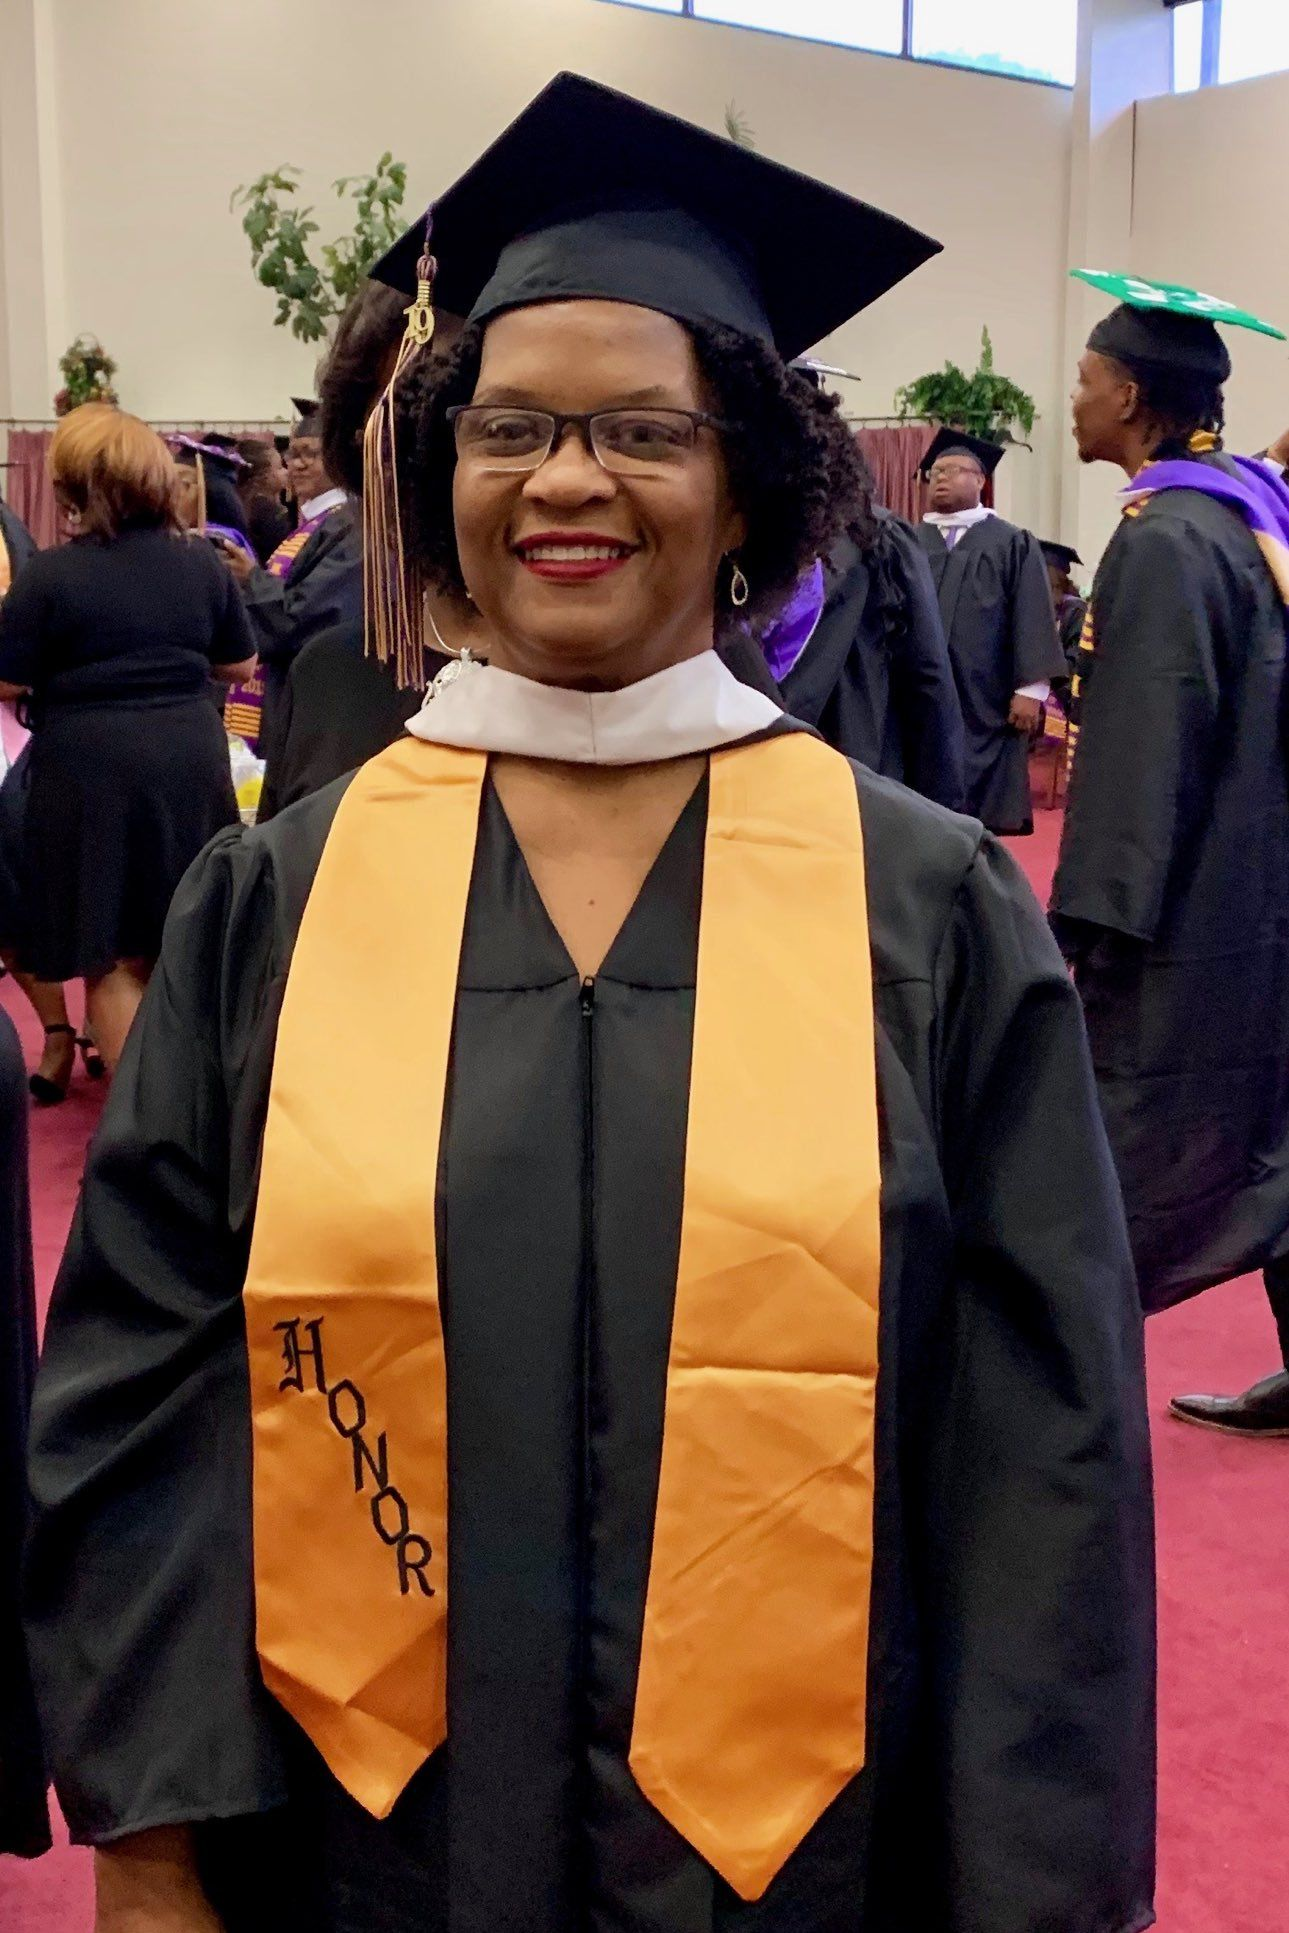 59-Year-Old Memphis Woman Graduates with Three College Degrees